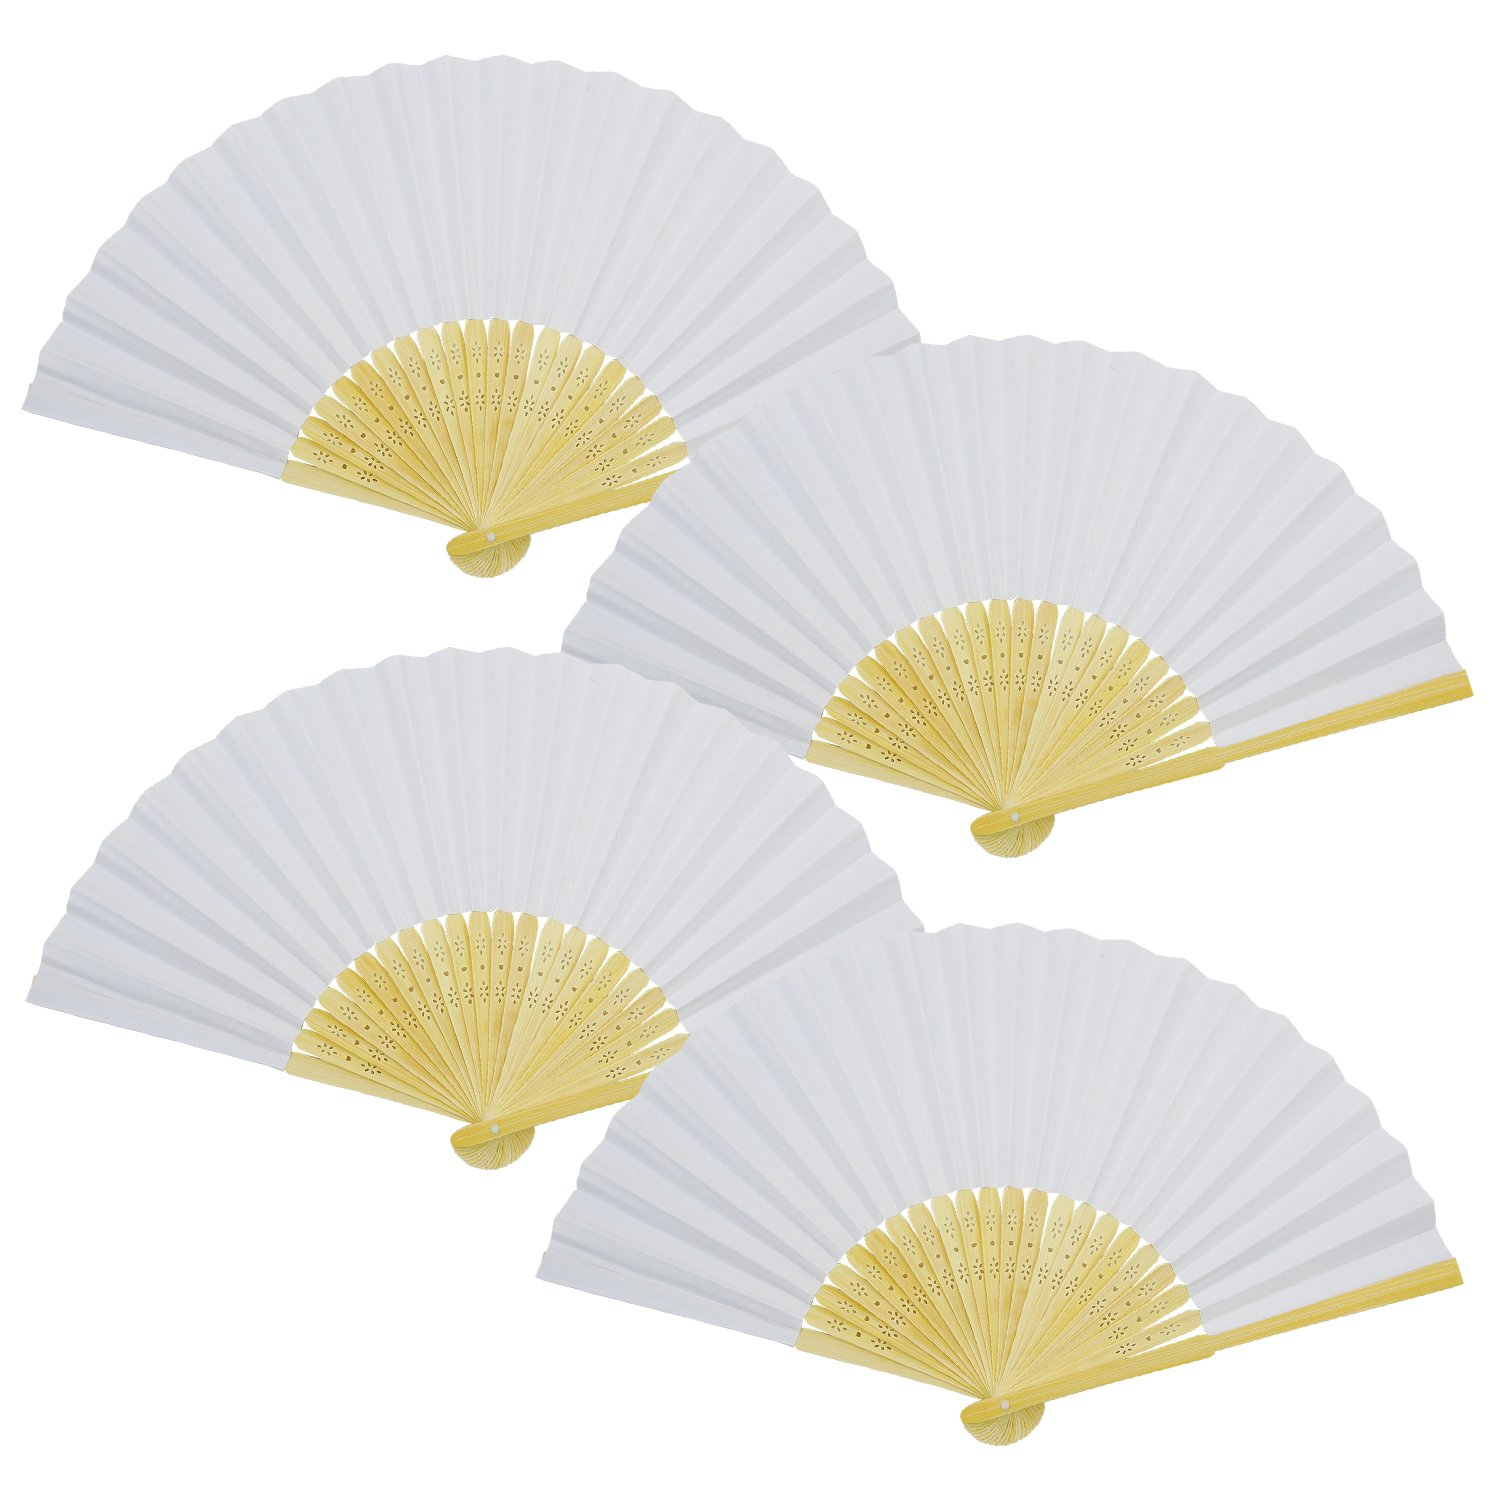 Granmp 20pcs White Bamboo Paper Fans, Folding Fan Handheld Fans Folded Fan for Wedding Party and Home Decoration, Kids Drawing